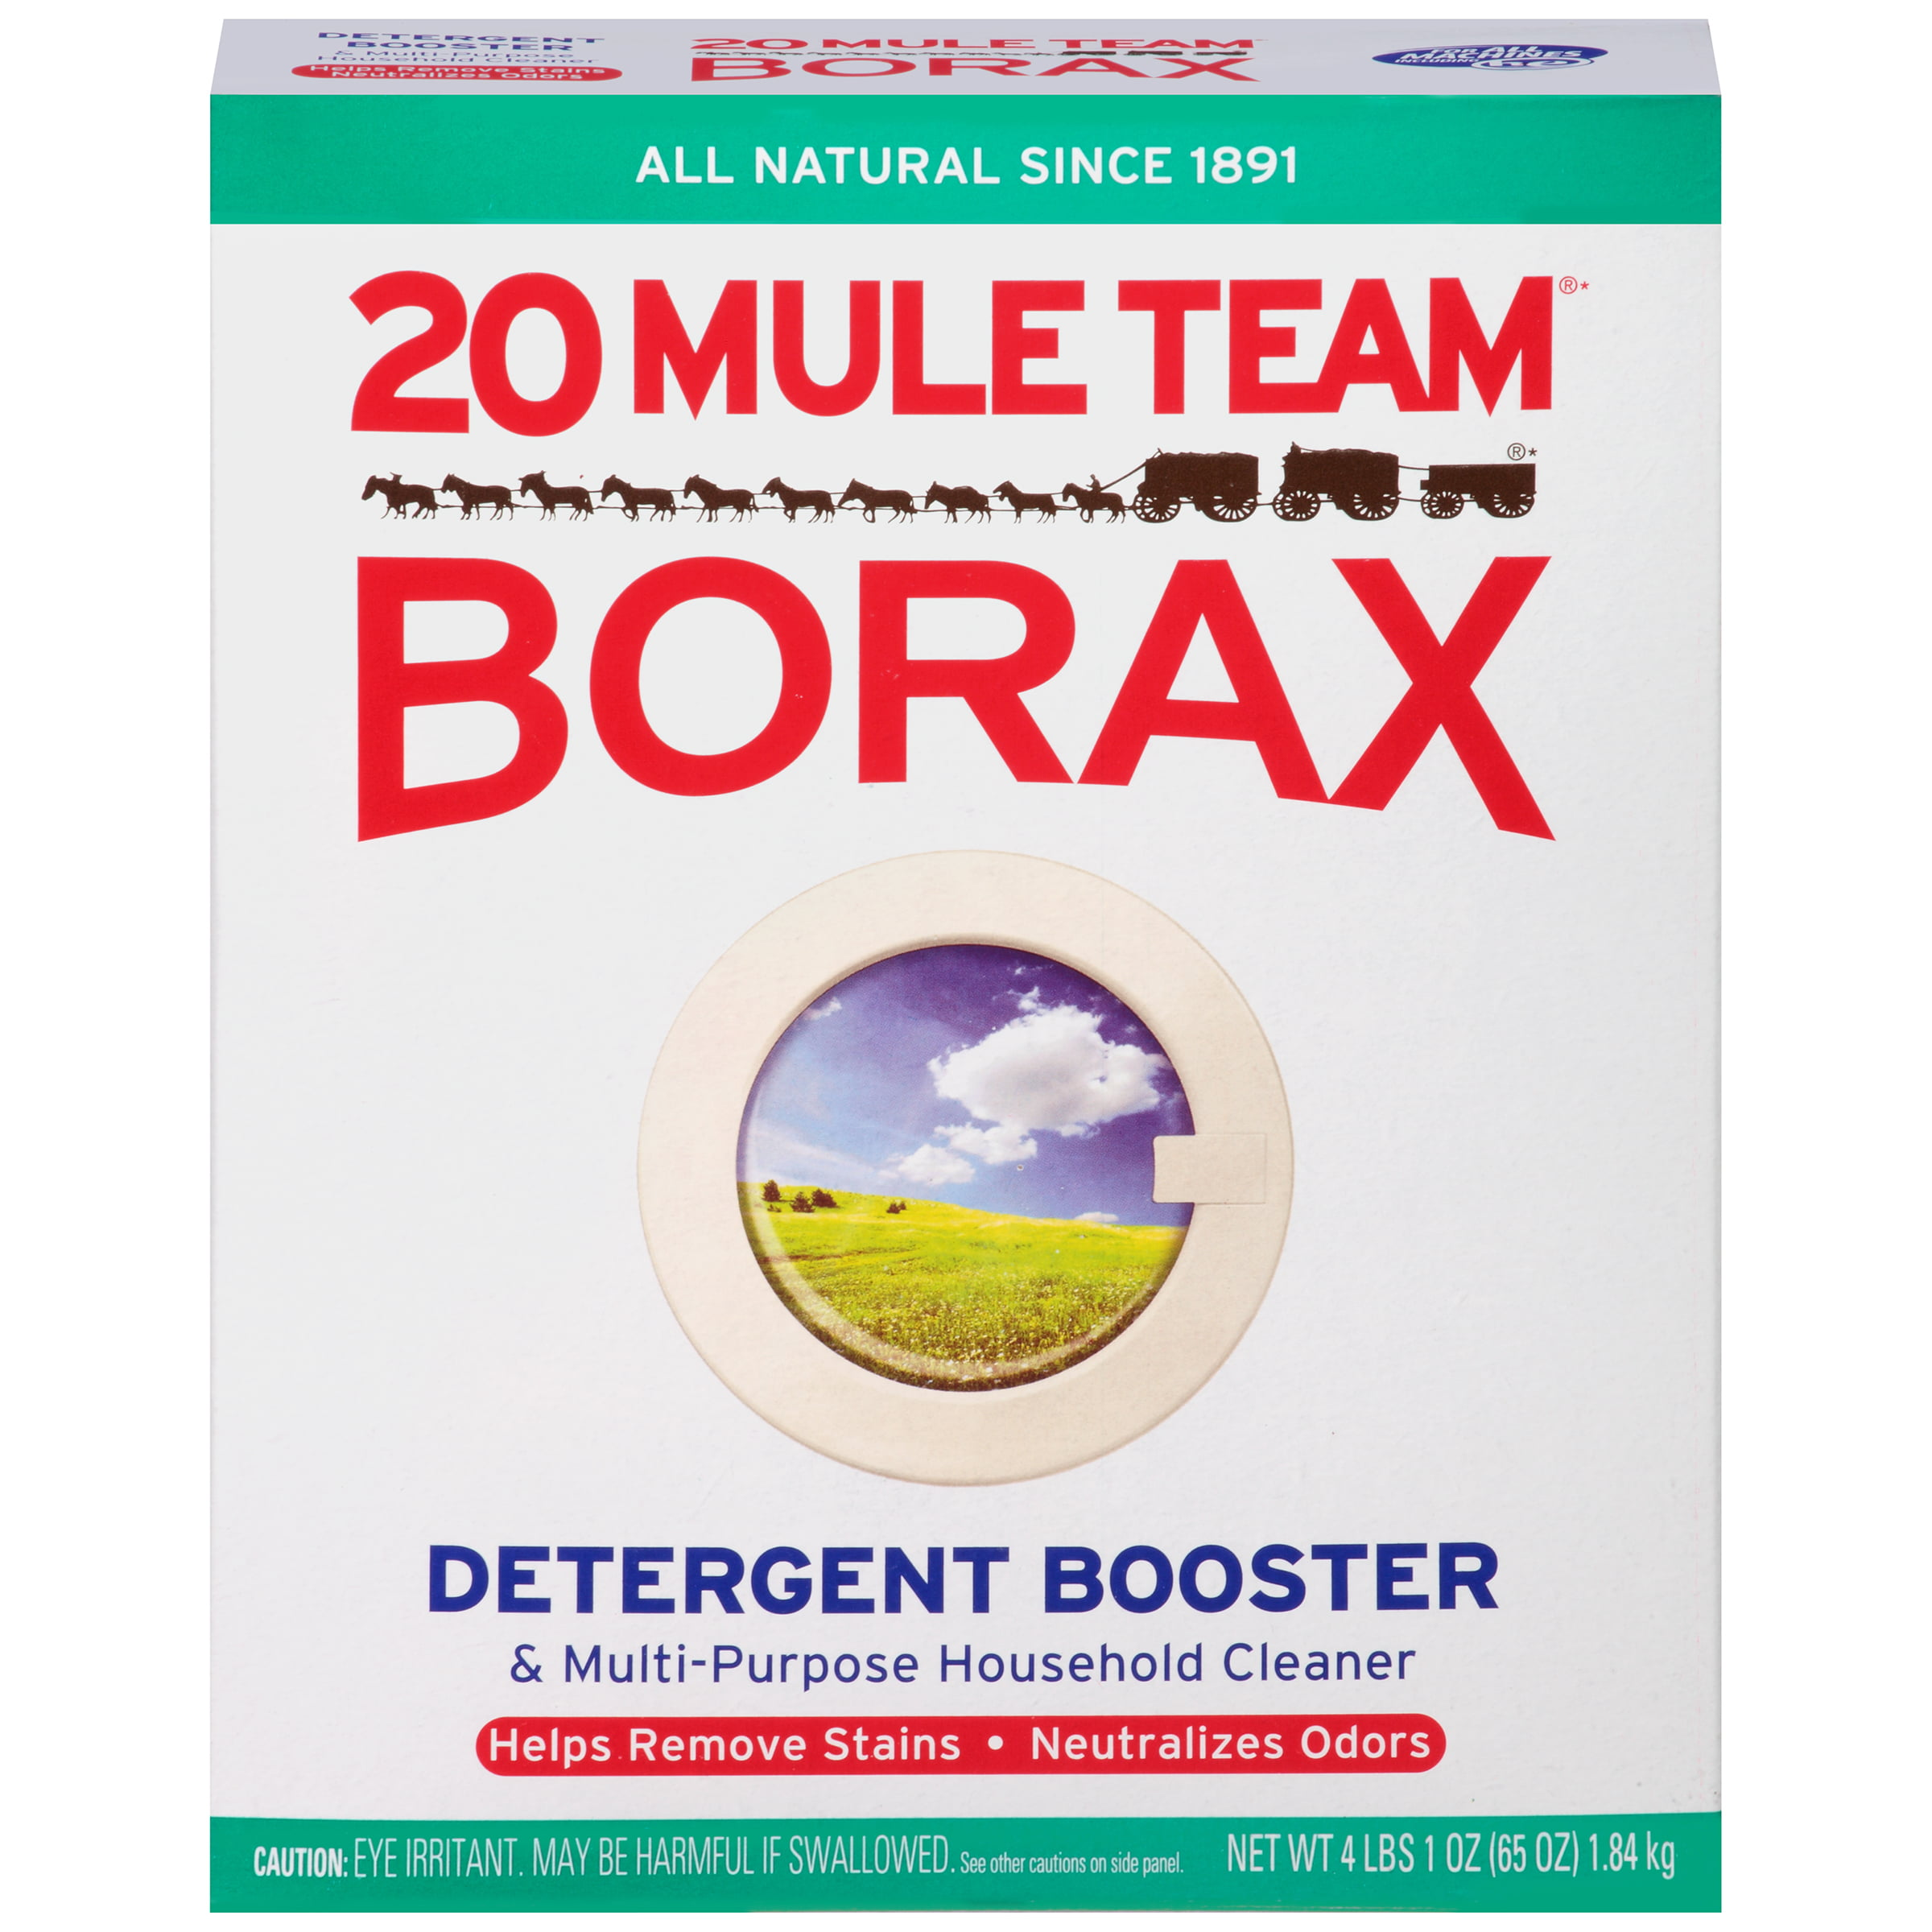 20 Mule Team Borax Detergent Booster Multi Purpose Household Cleaner 65 Ounce 6 Count Walmart Com Walmart Com